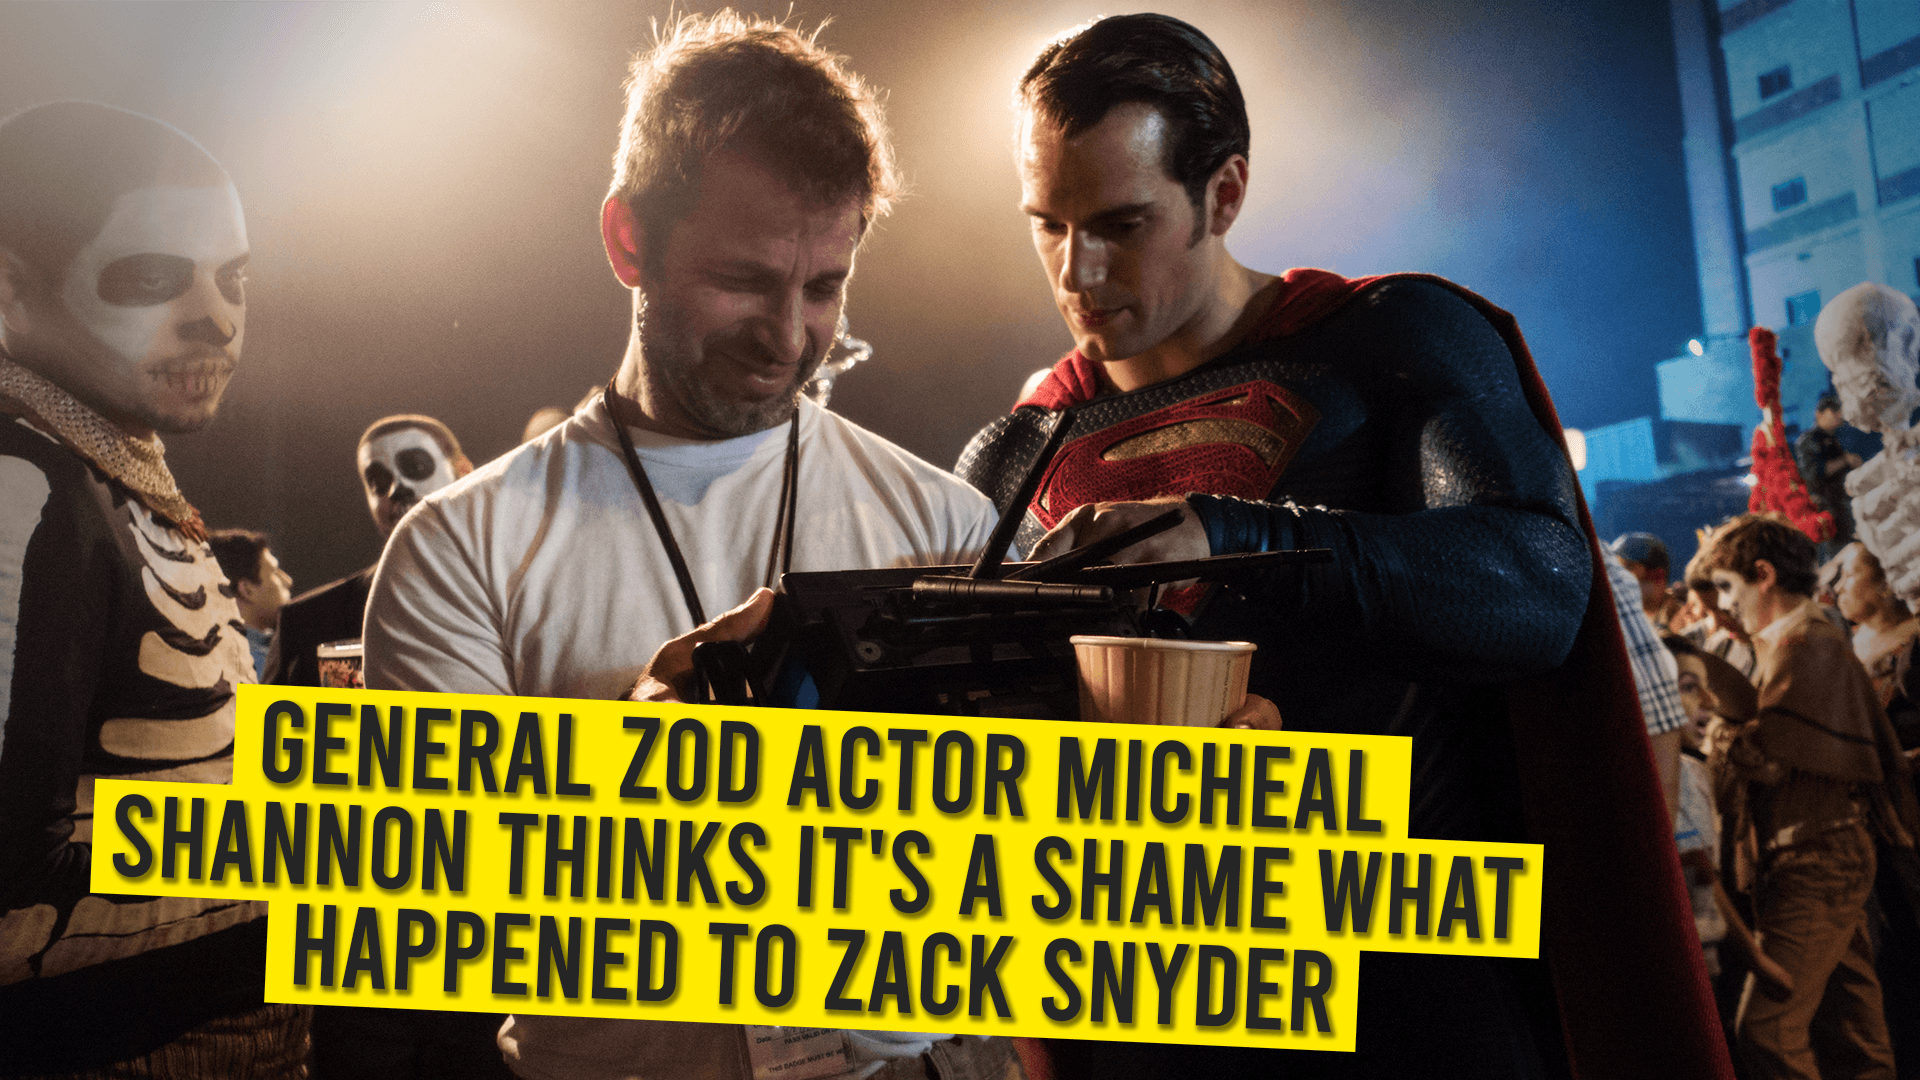 General Zod Actor Micheal Shannon Thinks It's A Shame What Happened To Zack Snyder